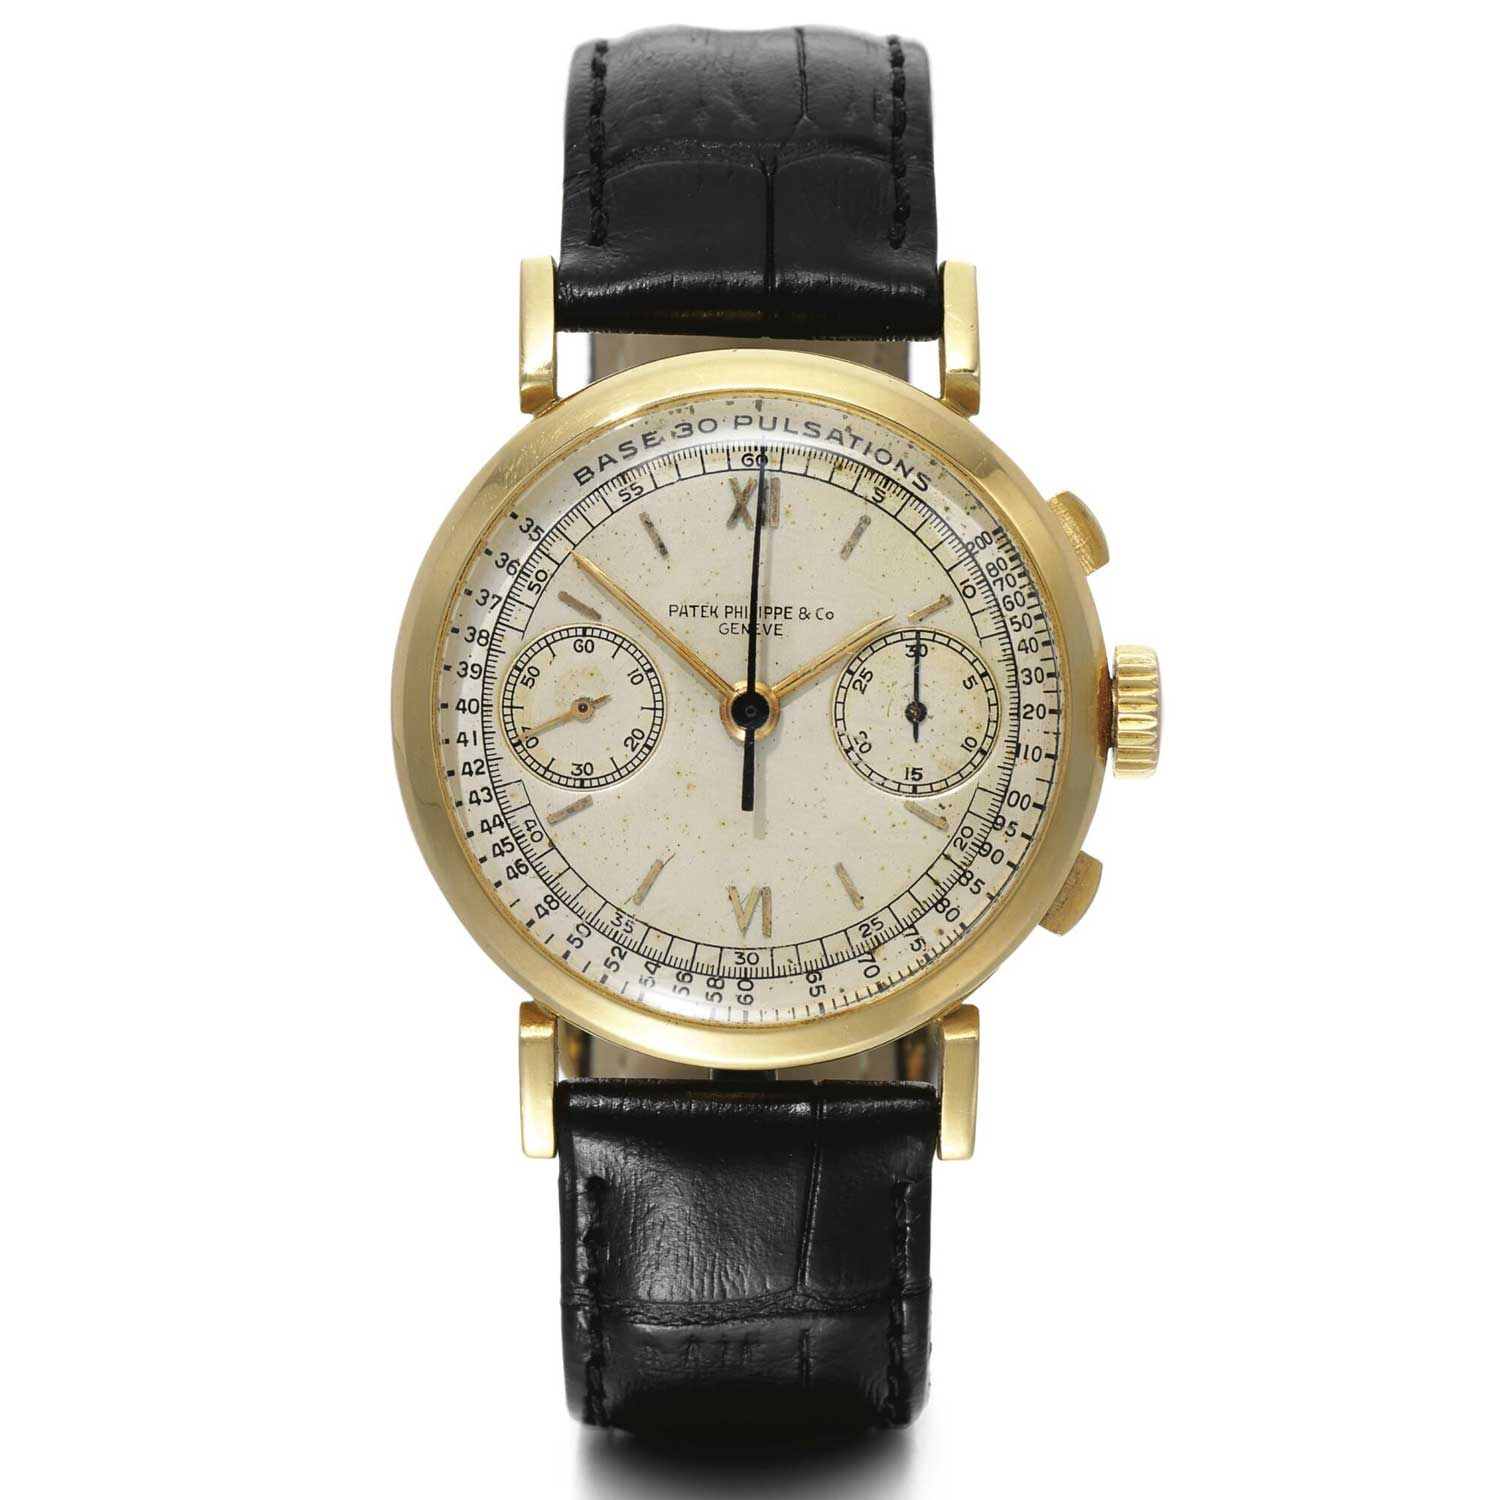 1943 Patek Philippe ref. 591 yellow gold chronograph with Roman numerals and pulsation scale (Image: Sothebys.com)